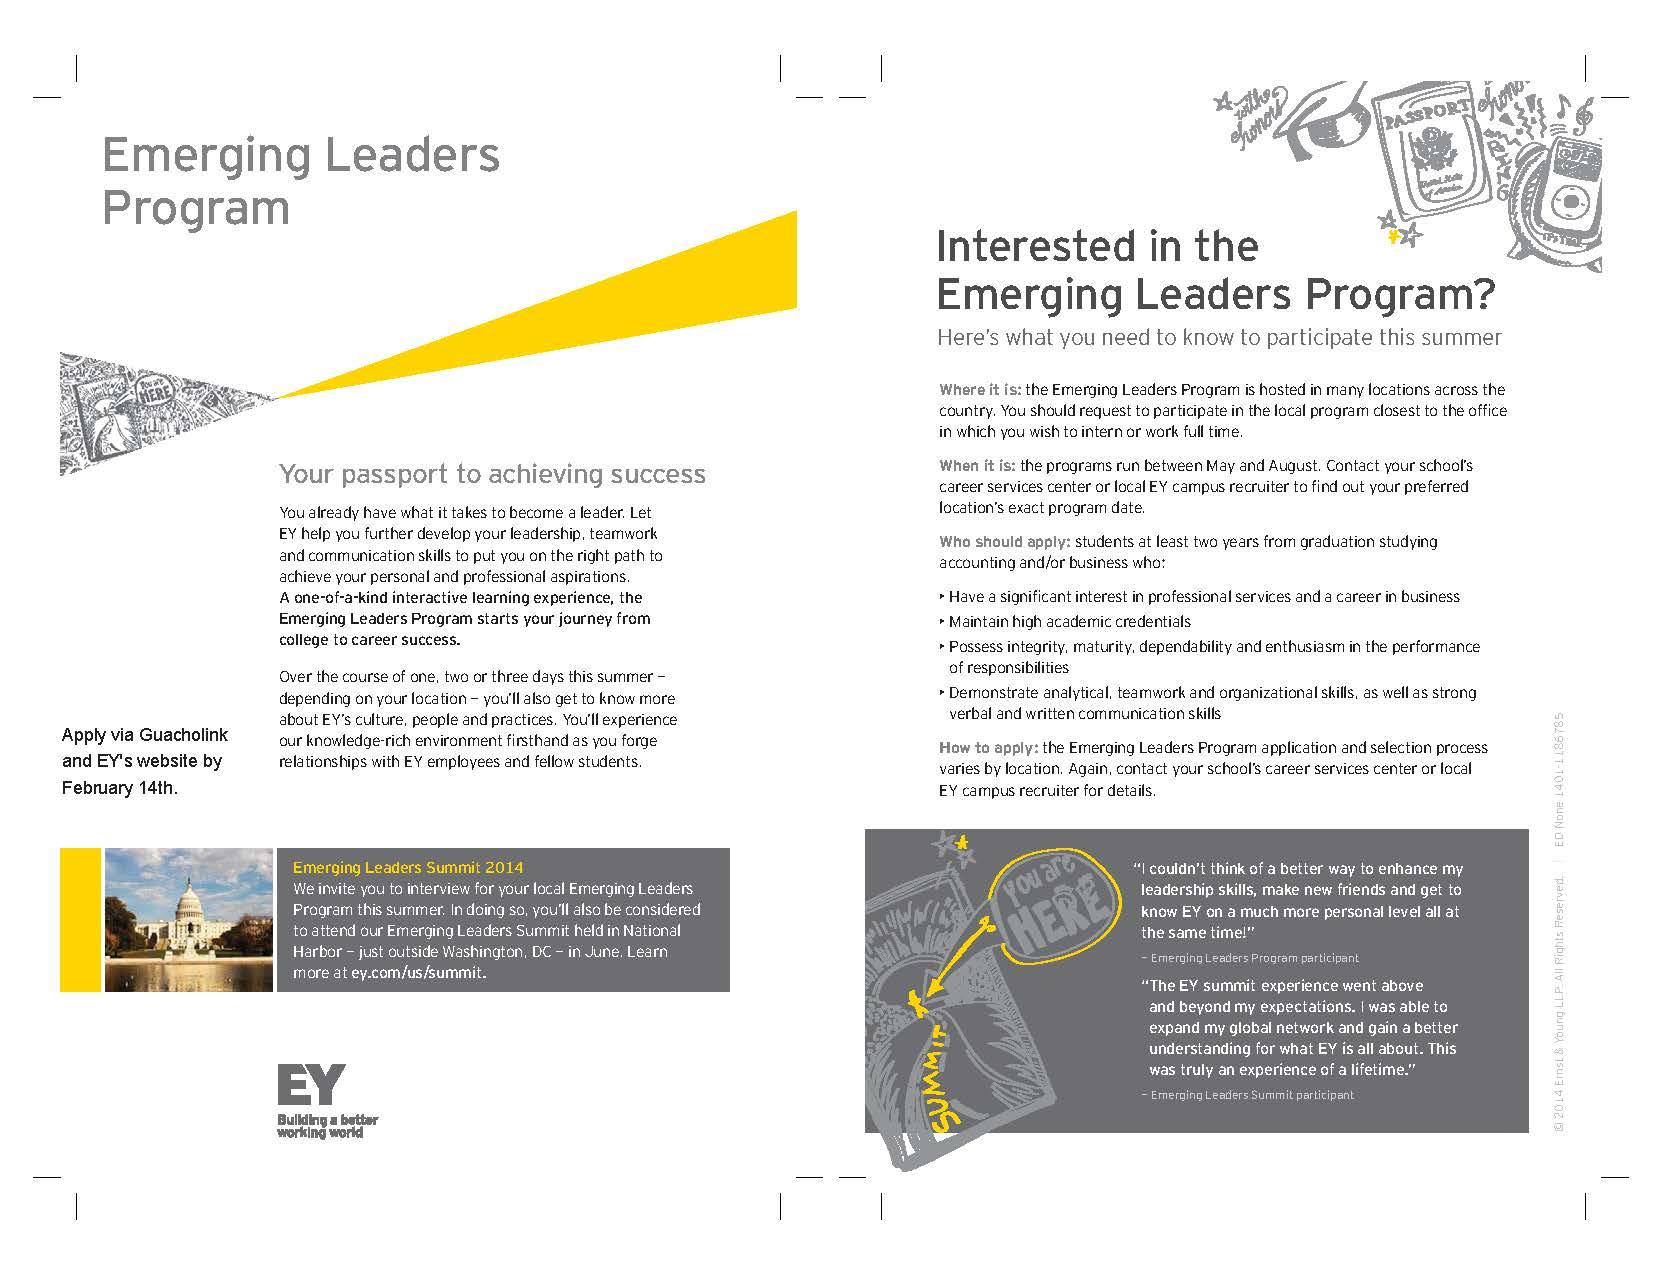 Ey S Emerging Leaders Summer Program